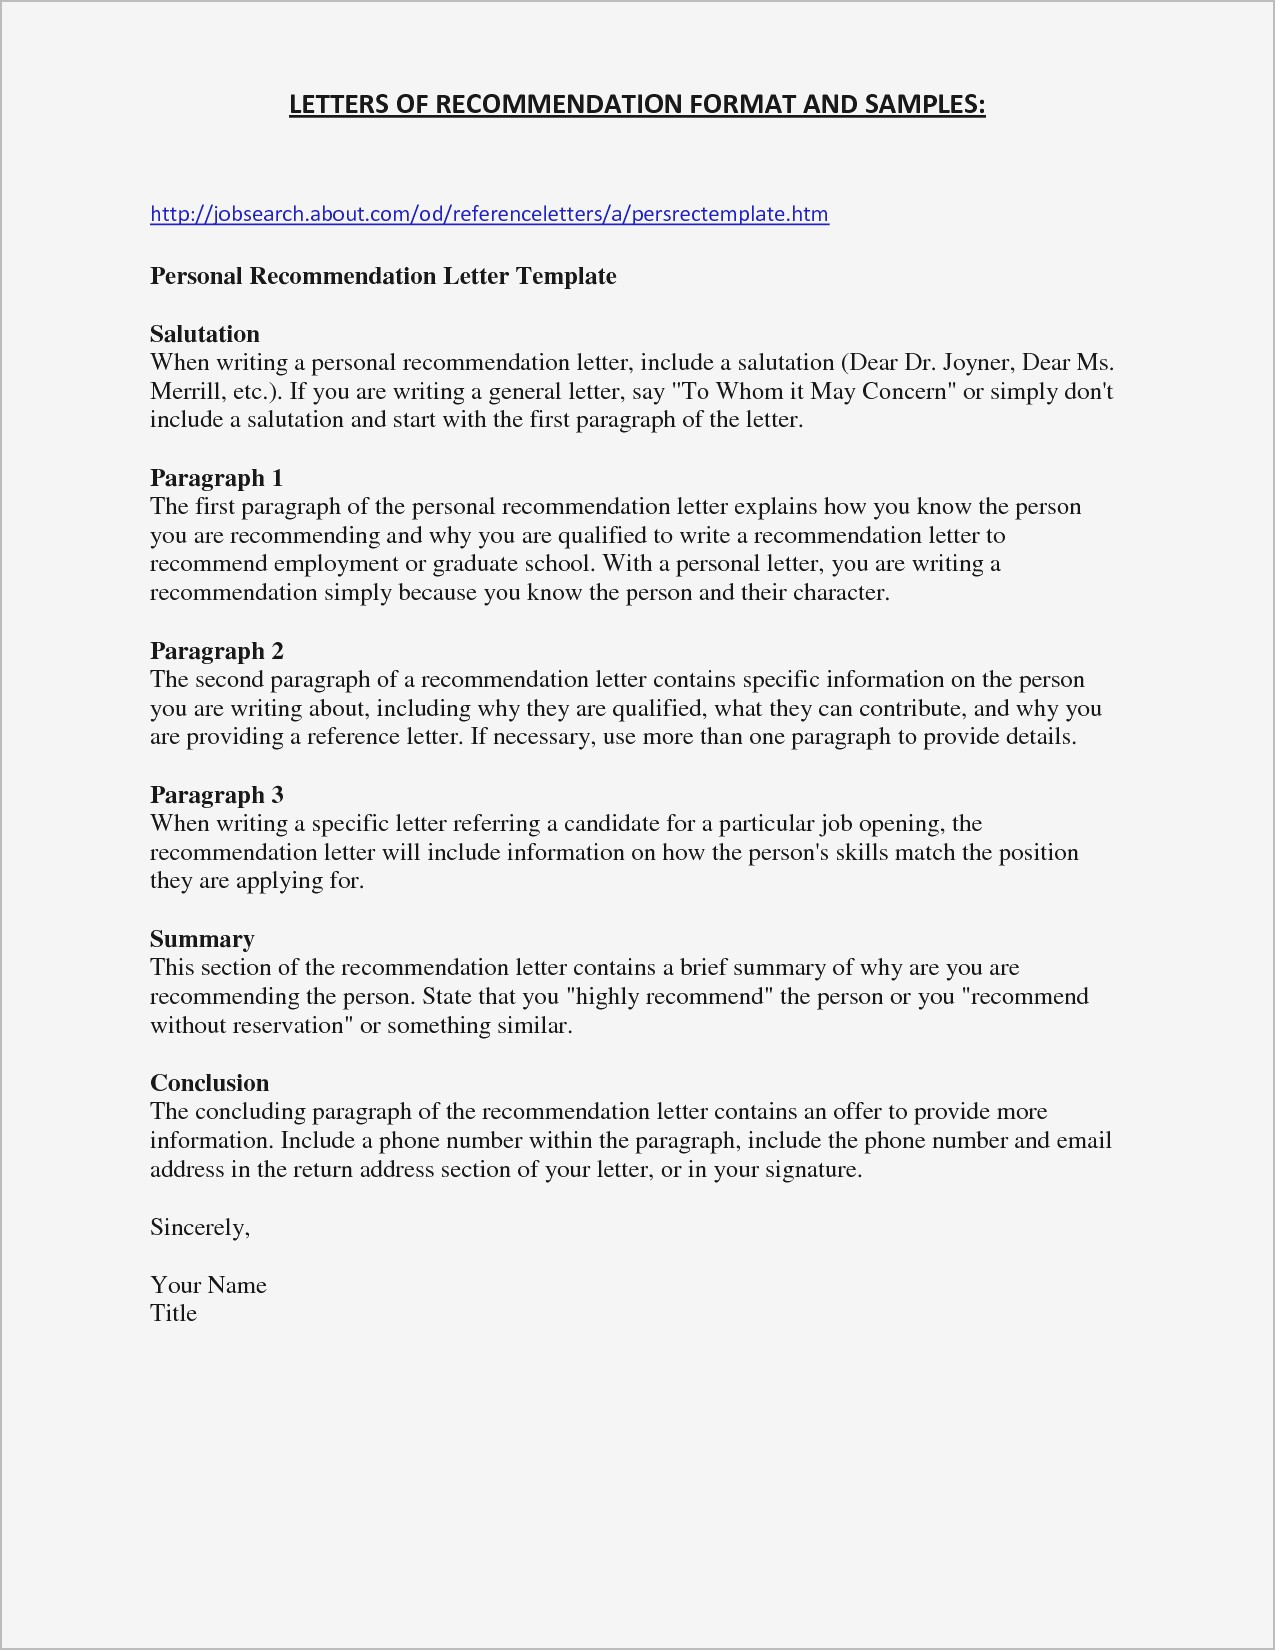 letter of recommendation template for student Collection-Nursing School Re mendation Letter From Employer Re mendation Letter Nursing School – Letter Re mendation Template For Student 9-e